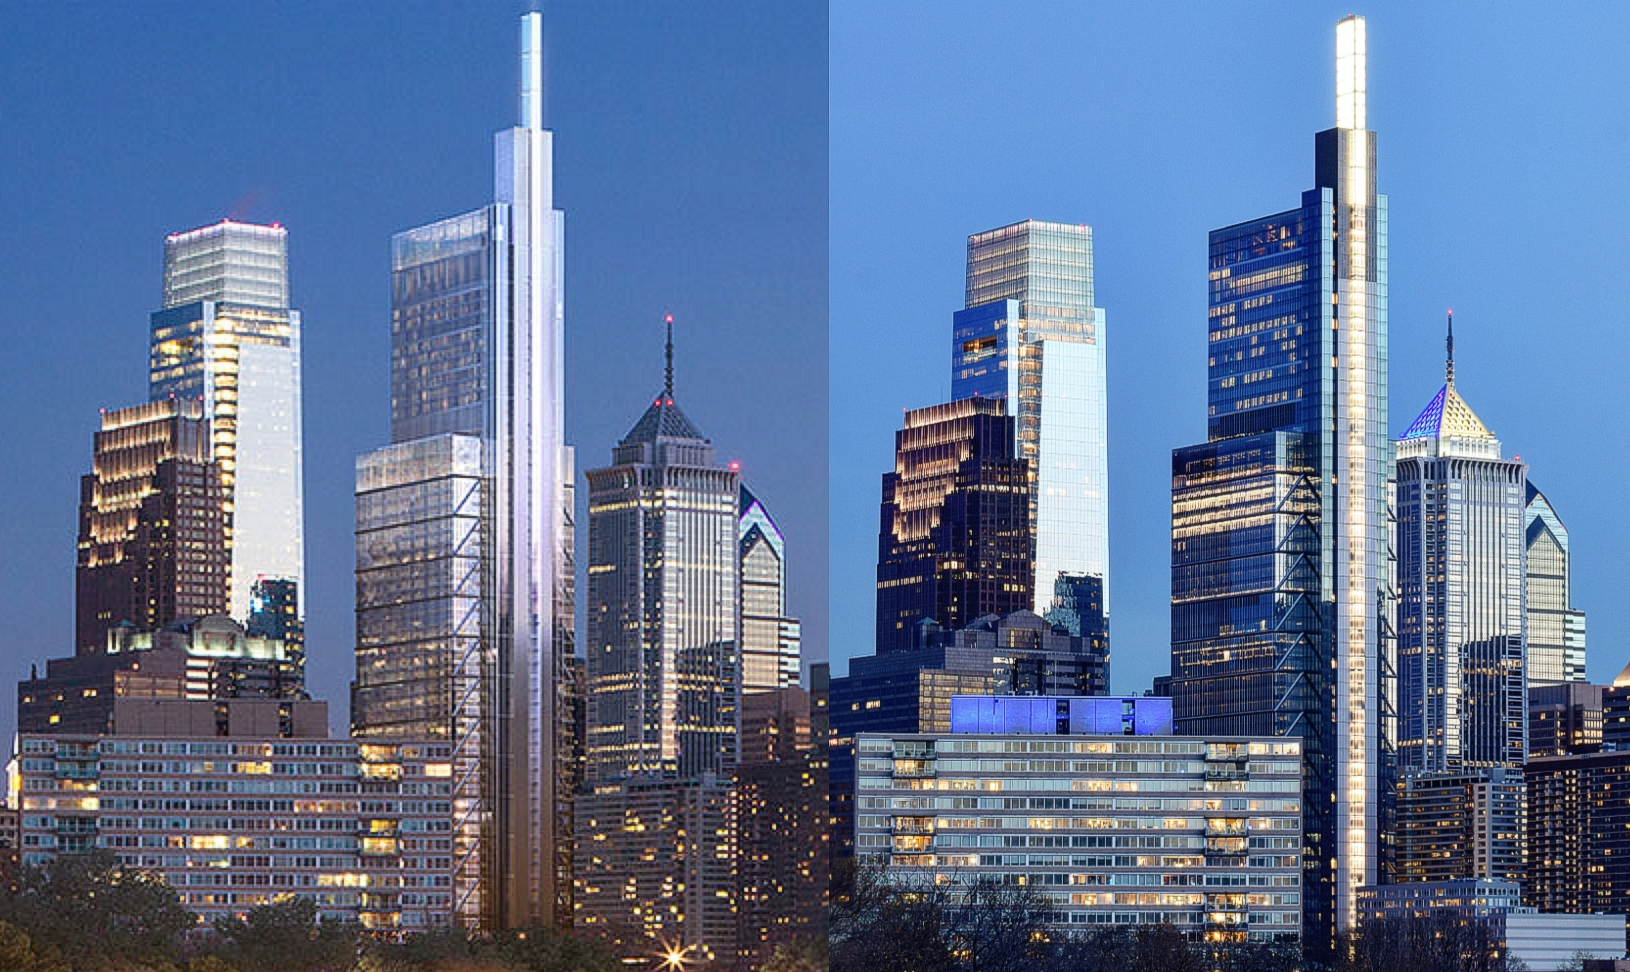 Comcast Technology Center 2014 and current design from Spring Garden Street Bridge. Left: image by Foster and Partners. Right: Photo by Thomas Koloski